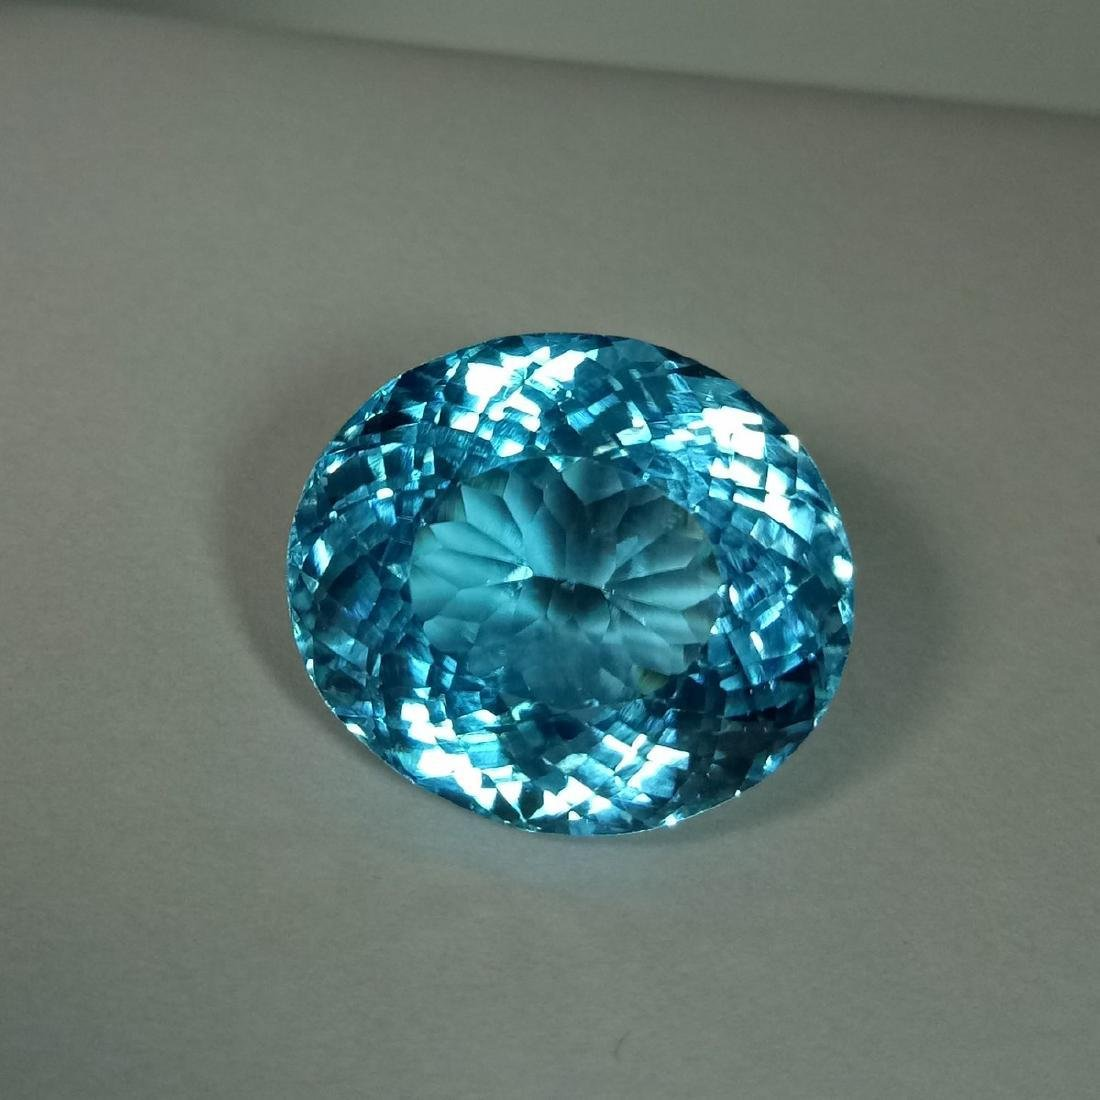 39.39 Carat Loose Swiss Blue Topaz - 3